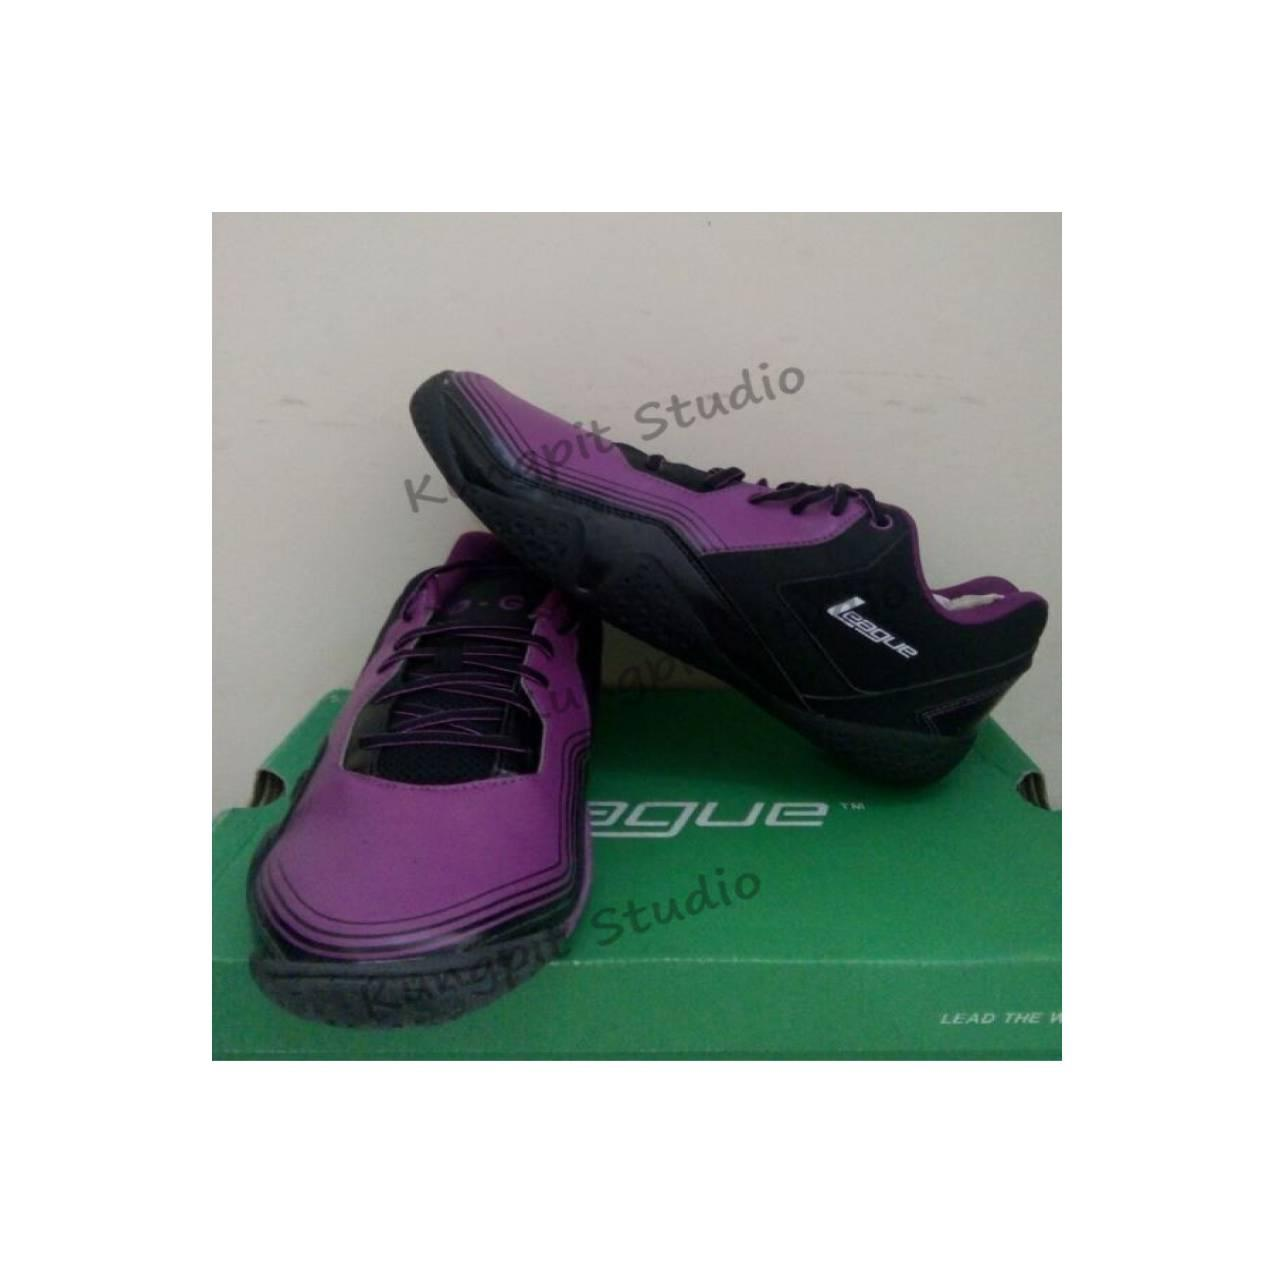 Sepatu Basket original League Zero G Low warna ungu hitam